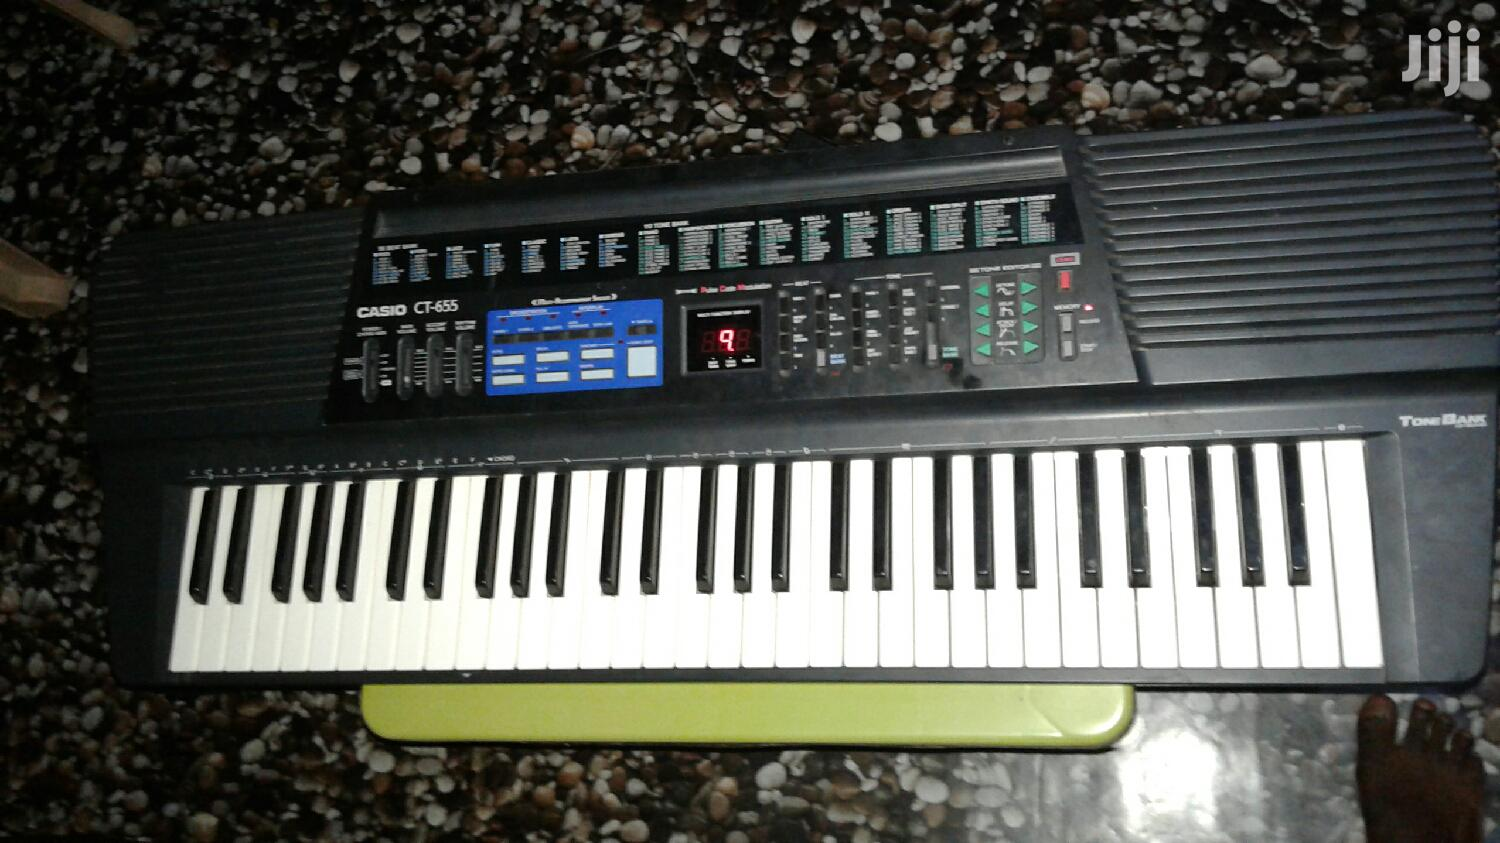 Archive: Casio CT 655